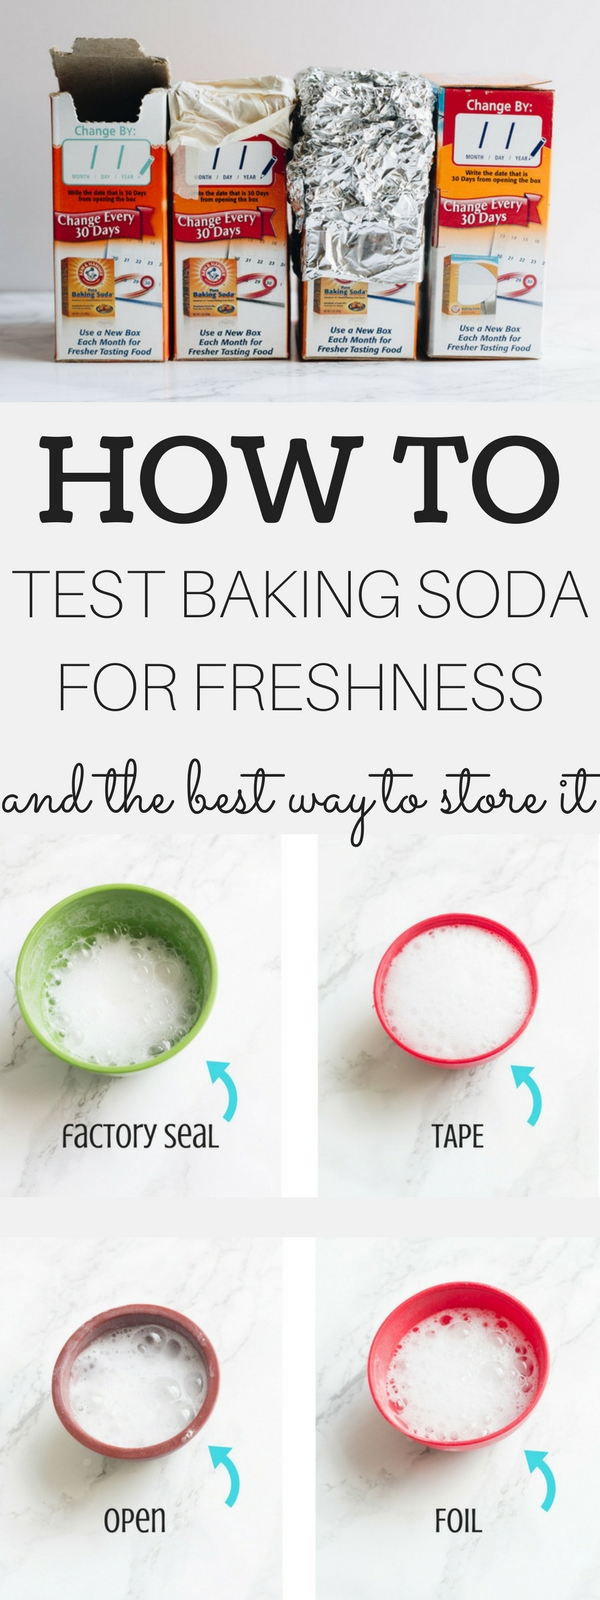 How to | Test baking soda | How to test baking soda | Baking soda freshness | how to store | Storing Baking Soda